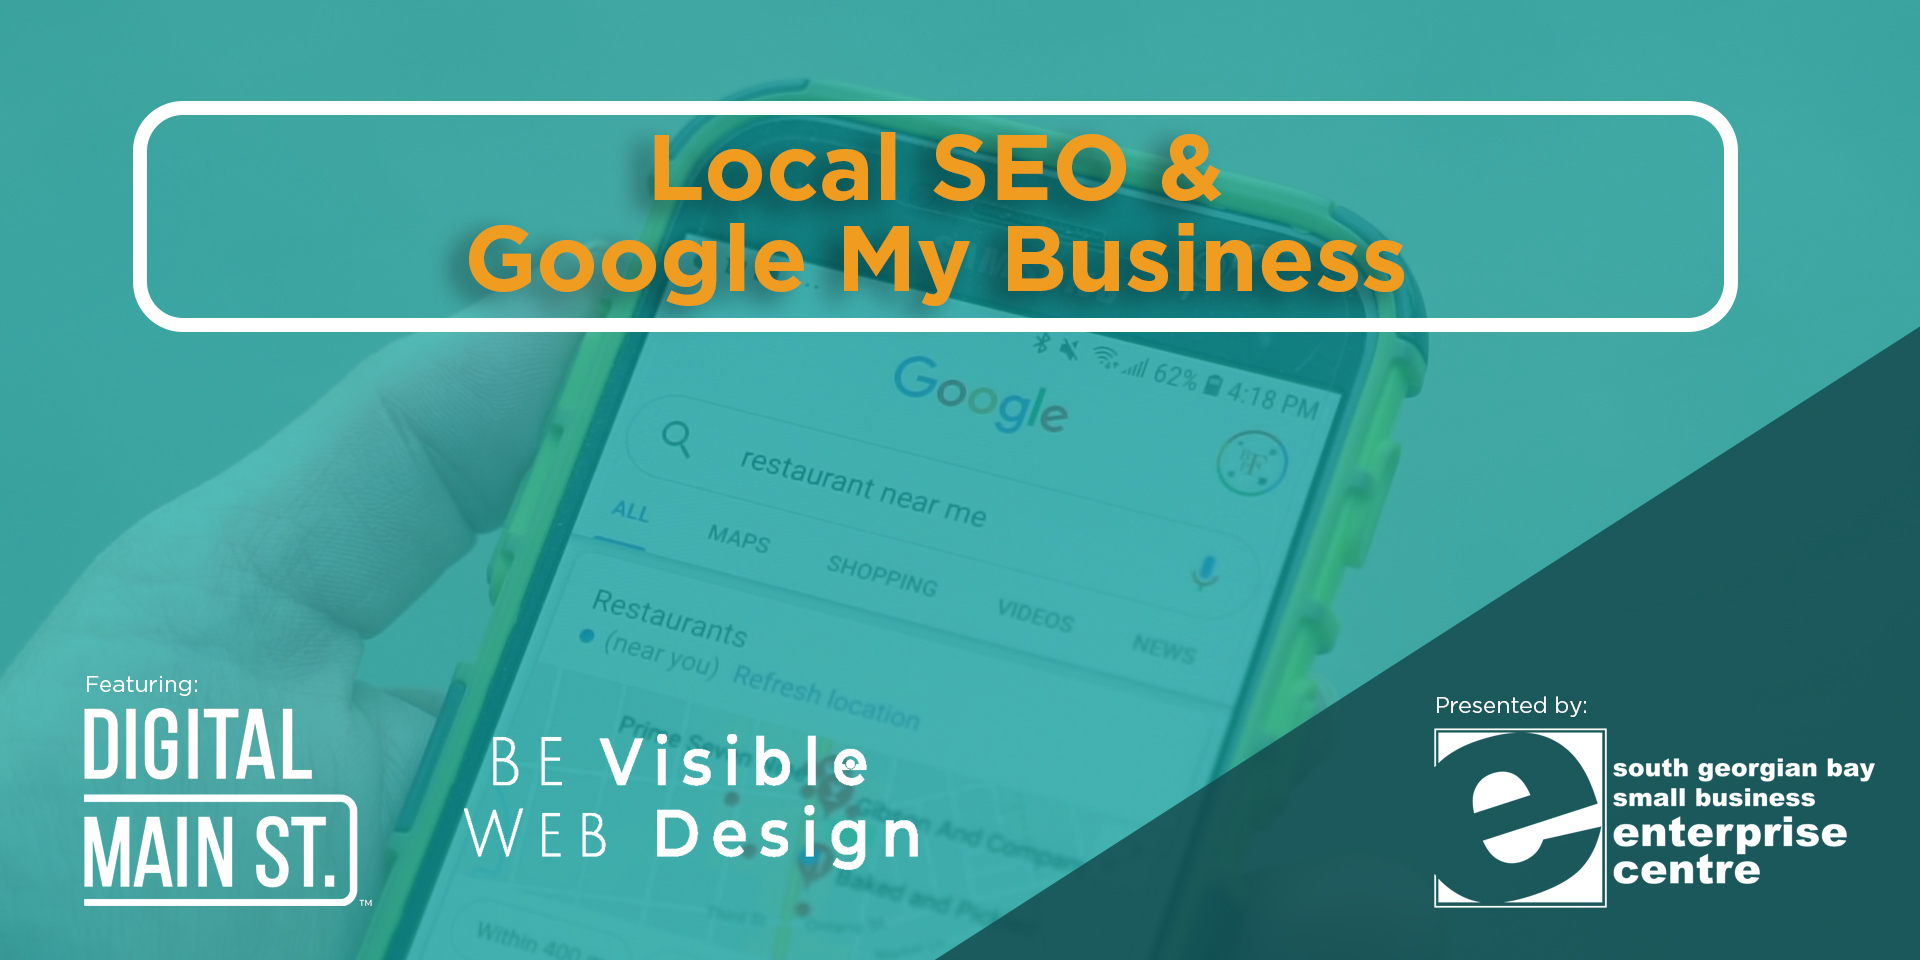 Access to webinar on Local SEO & Google My Business